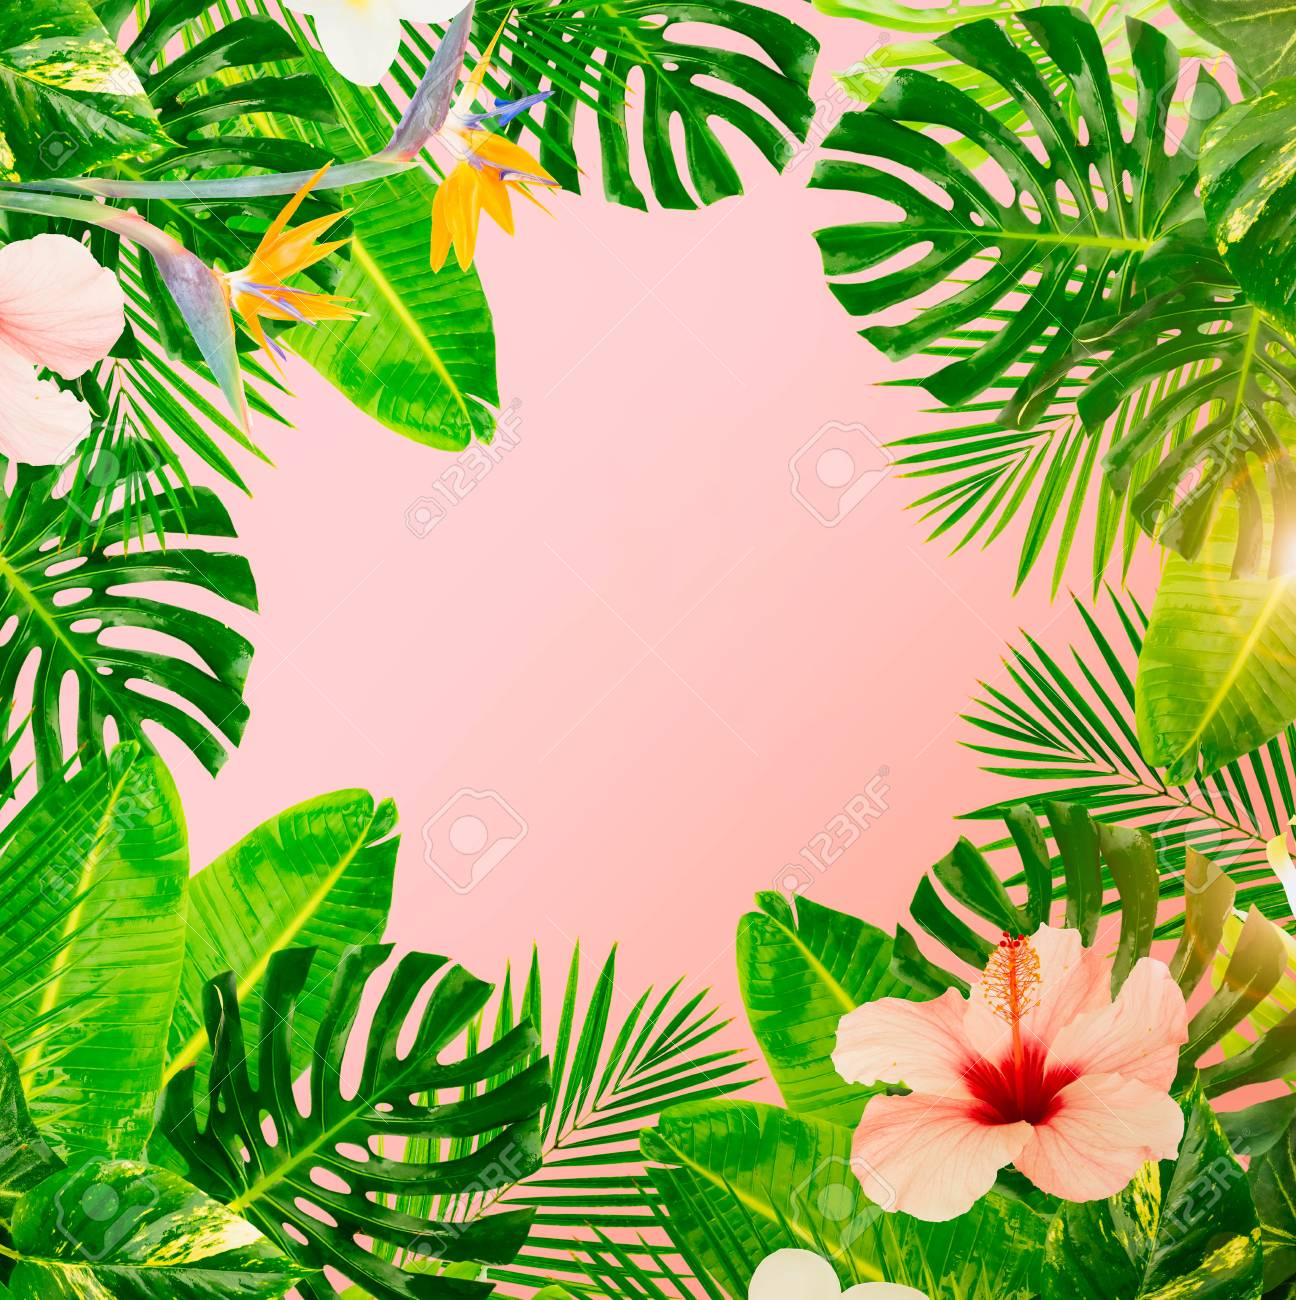 Tropical Green Leaves And Flowers Frame On Pink Background Toned Stock Photo Picture And Royalty Free Image Image 101532953 A closer look at a tropical green leaf while water drops slide on its top in slow motion. tropical green leaves and flowers frame on pink background toned